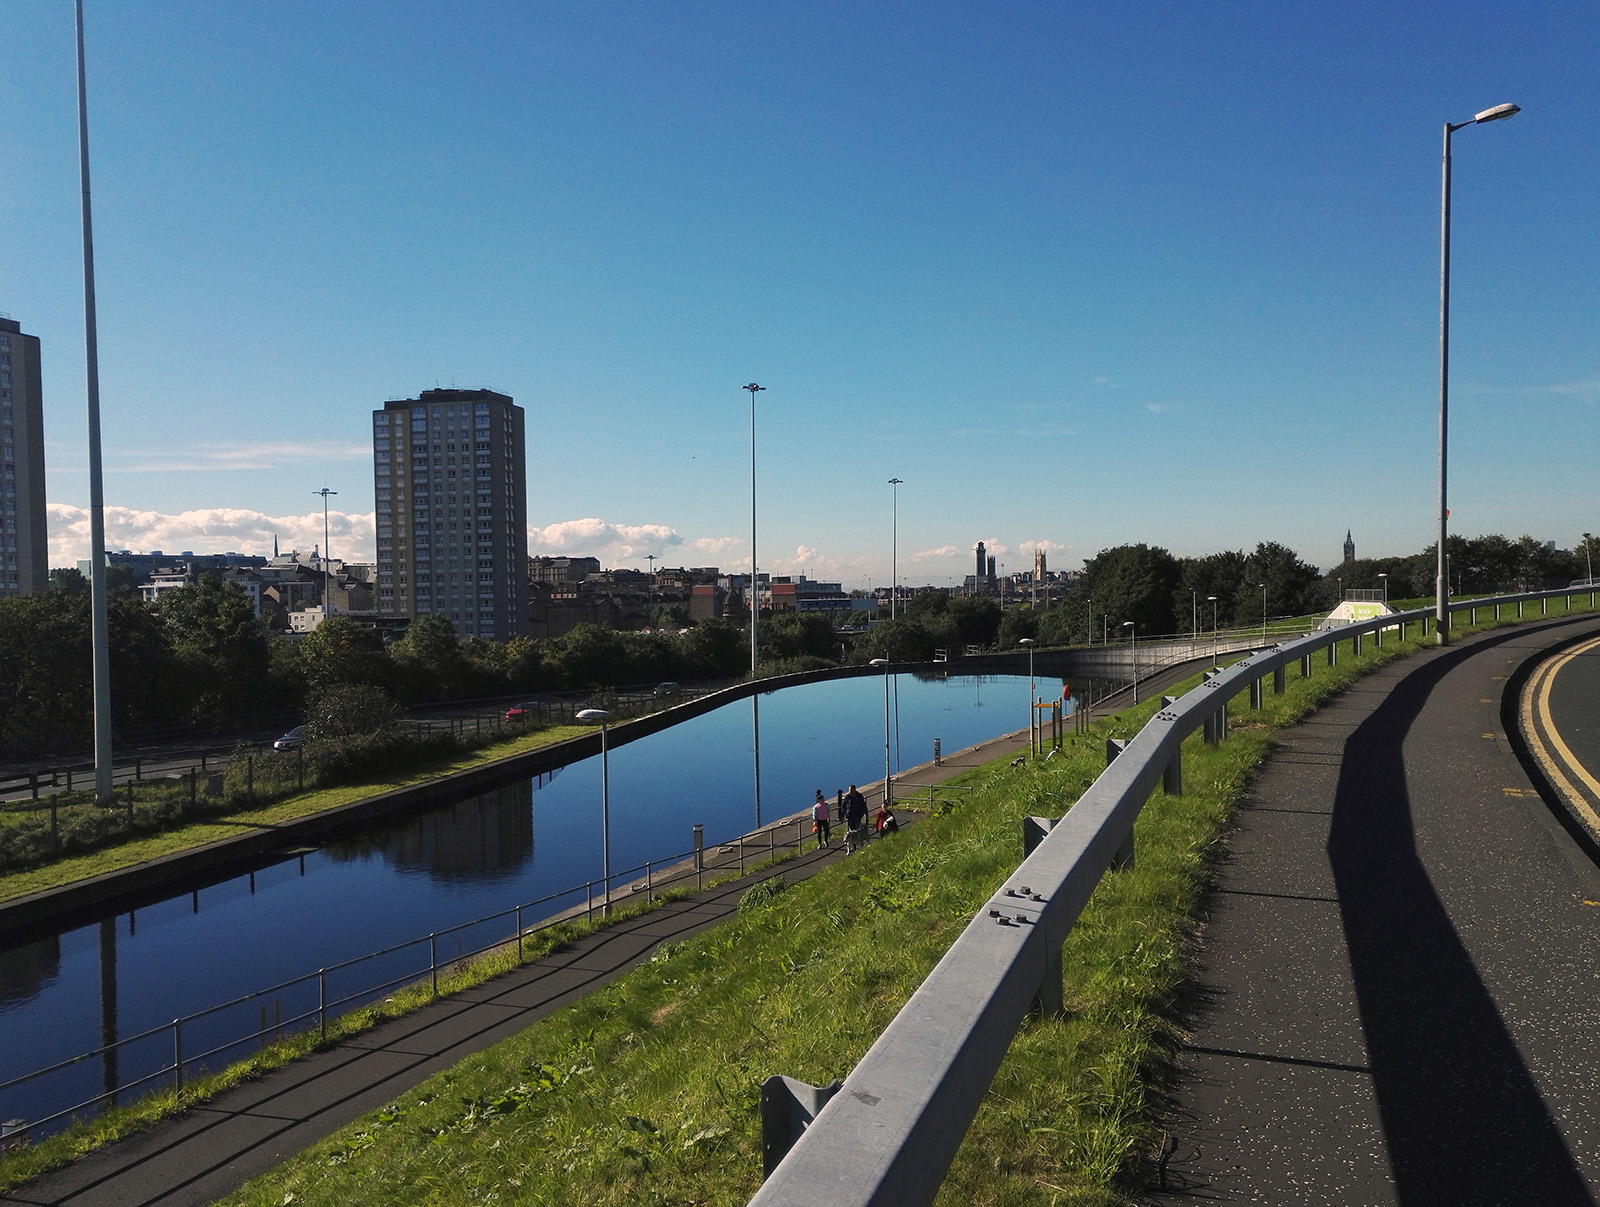 Forth and Clyde Canal (Scotland) - Port Dundas (1820) - Glasgow